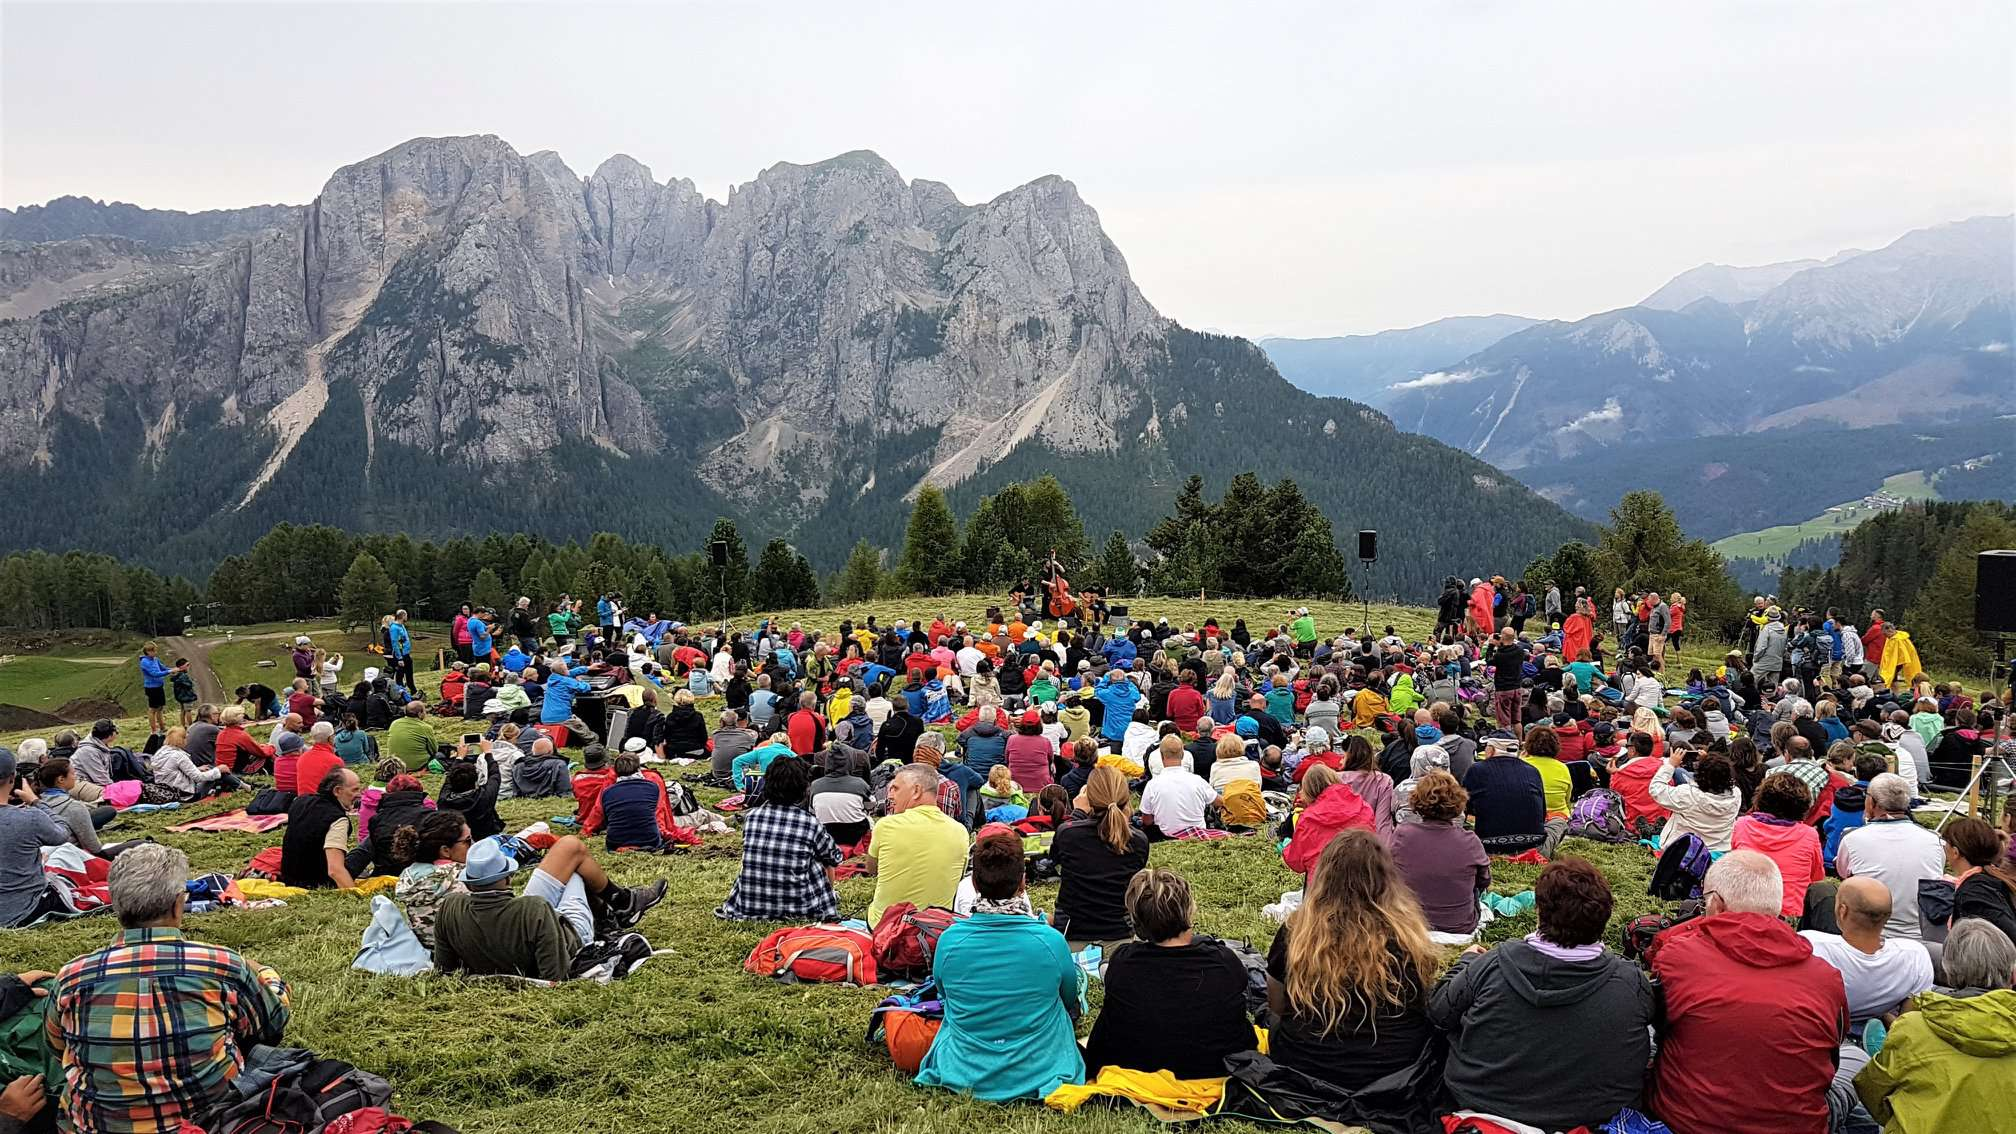 SOUNDS OF THE DOLOMITES